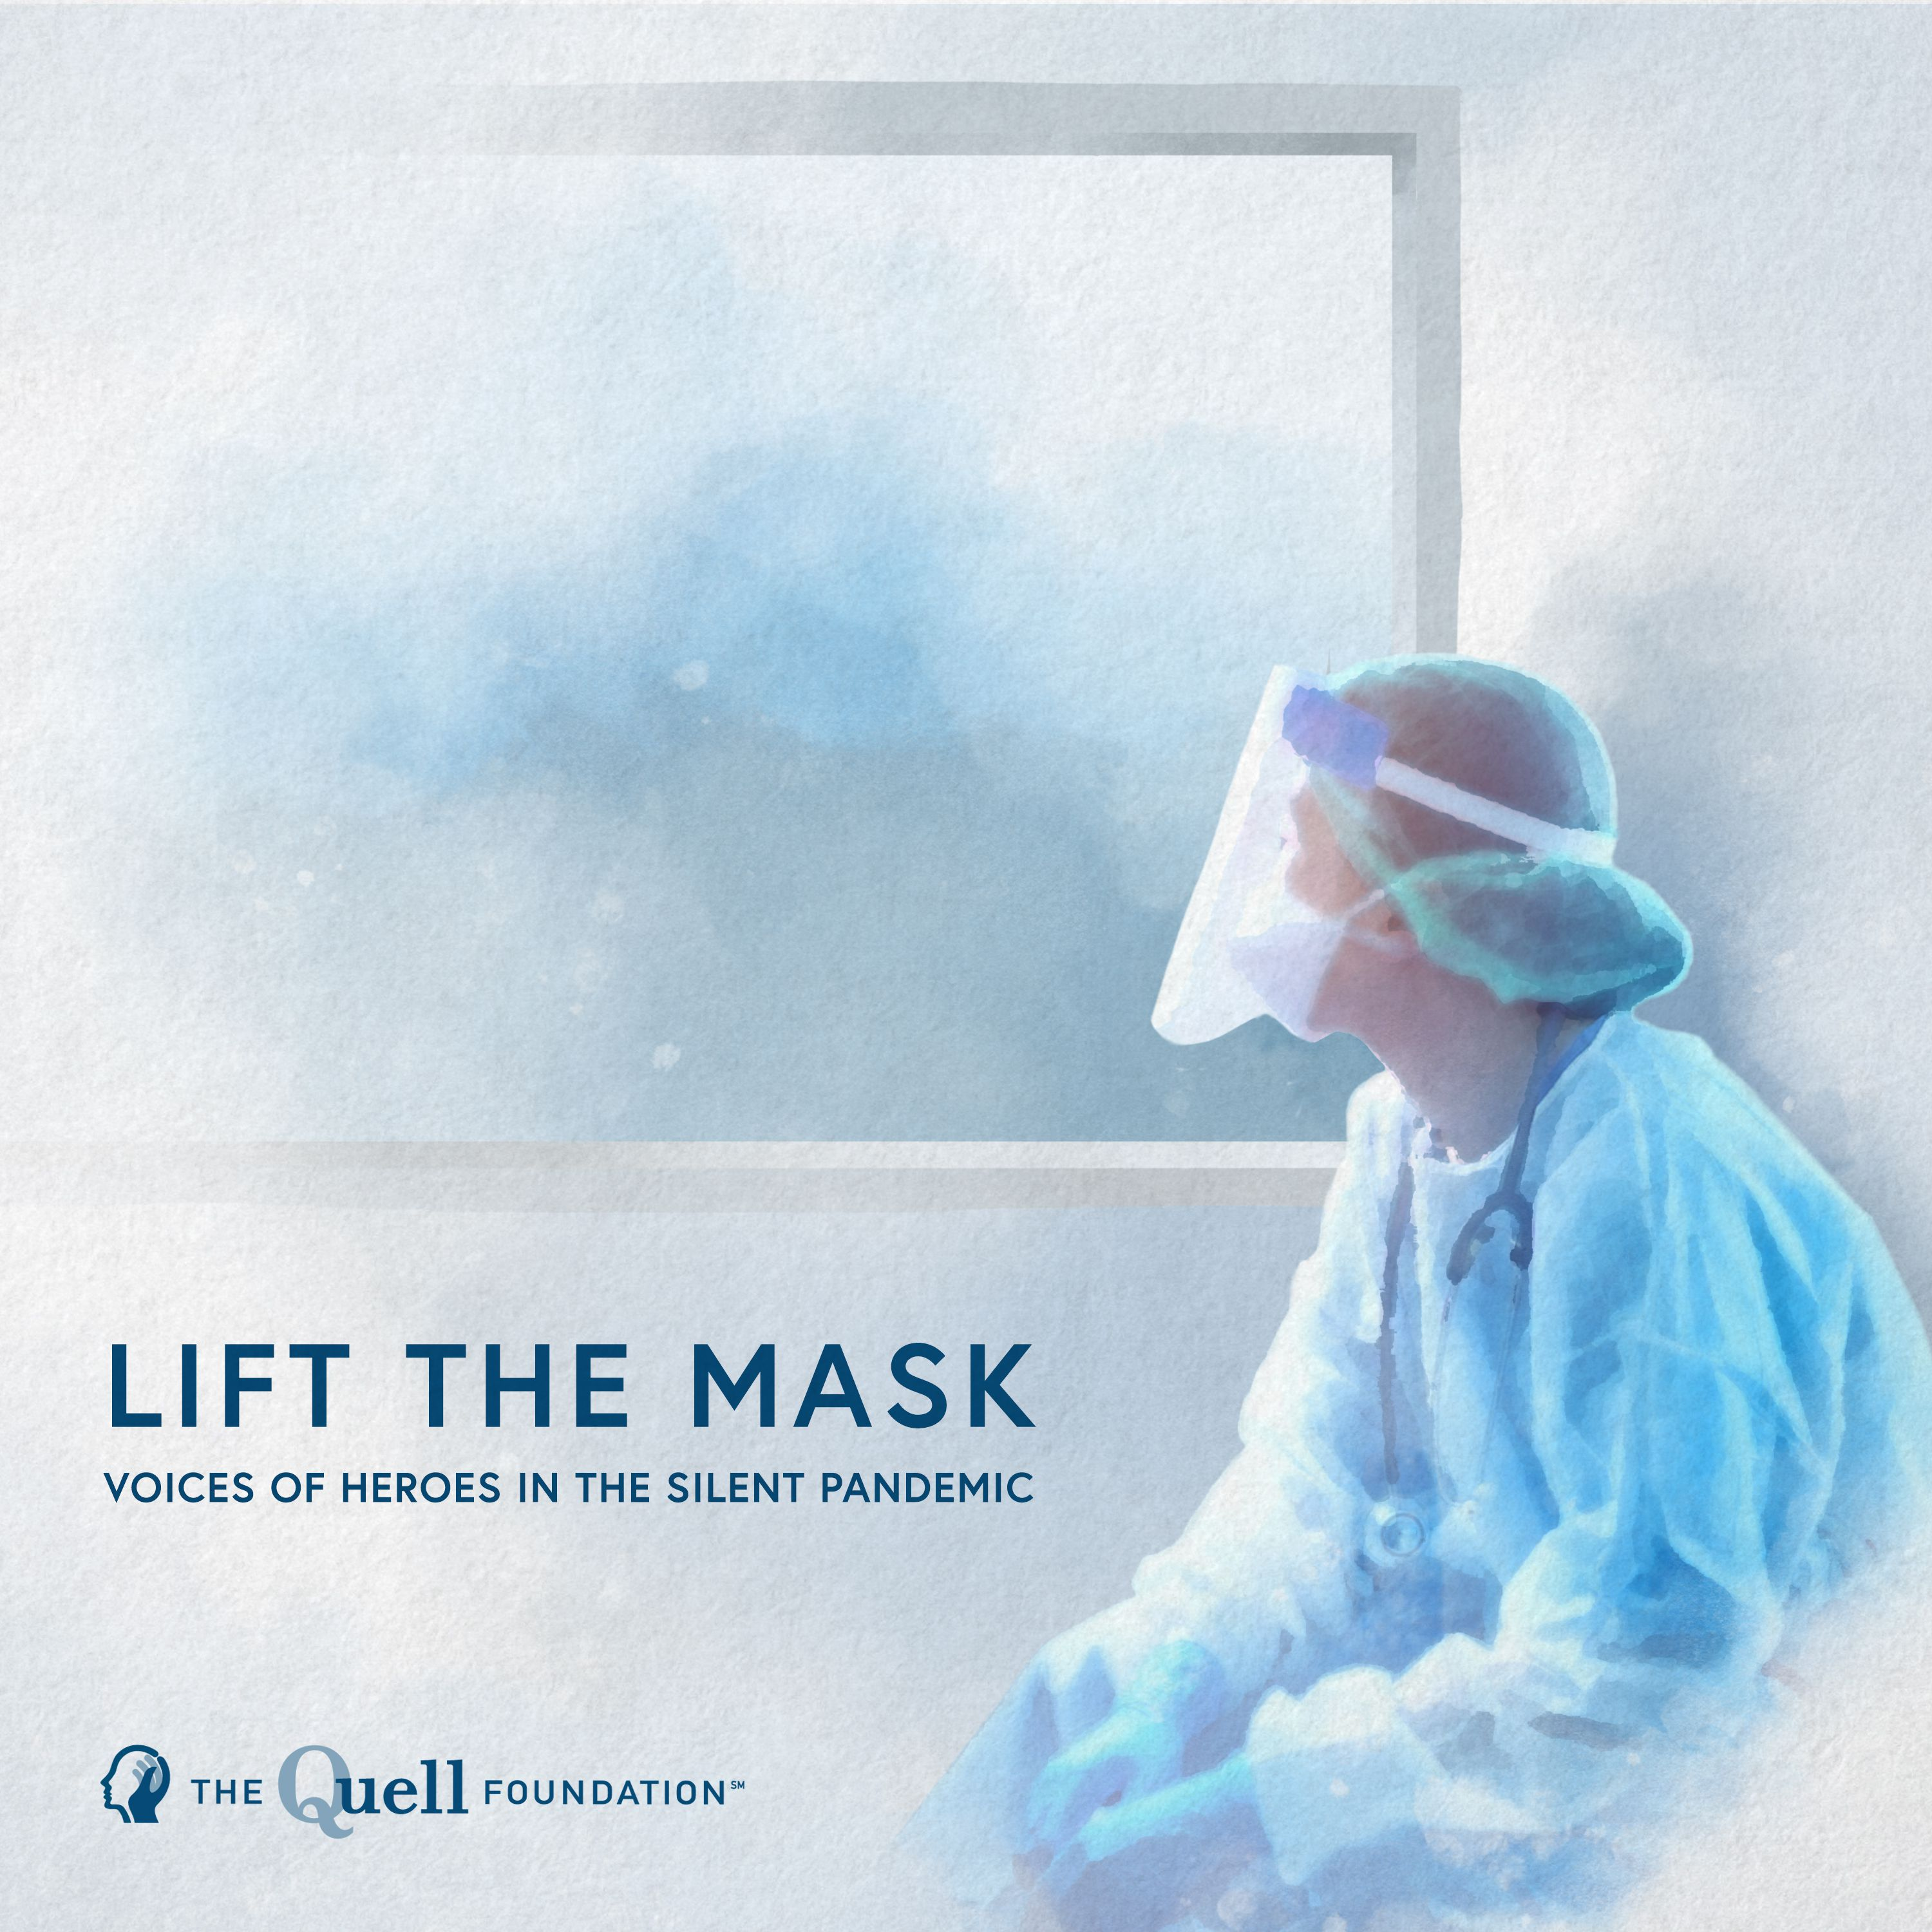 Lift the Mask - Voices of Heroes in the Silent Pandemic